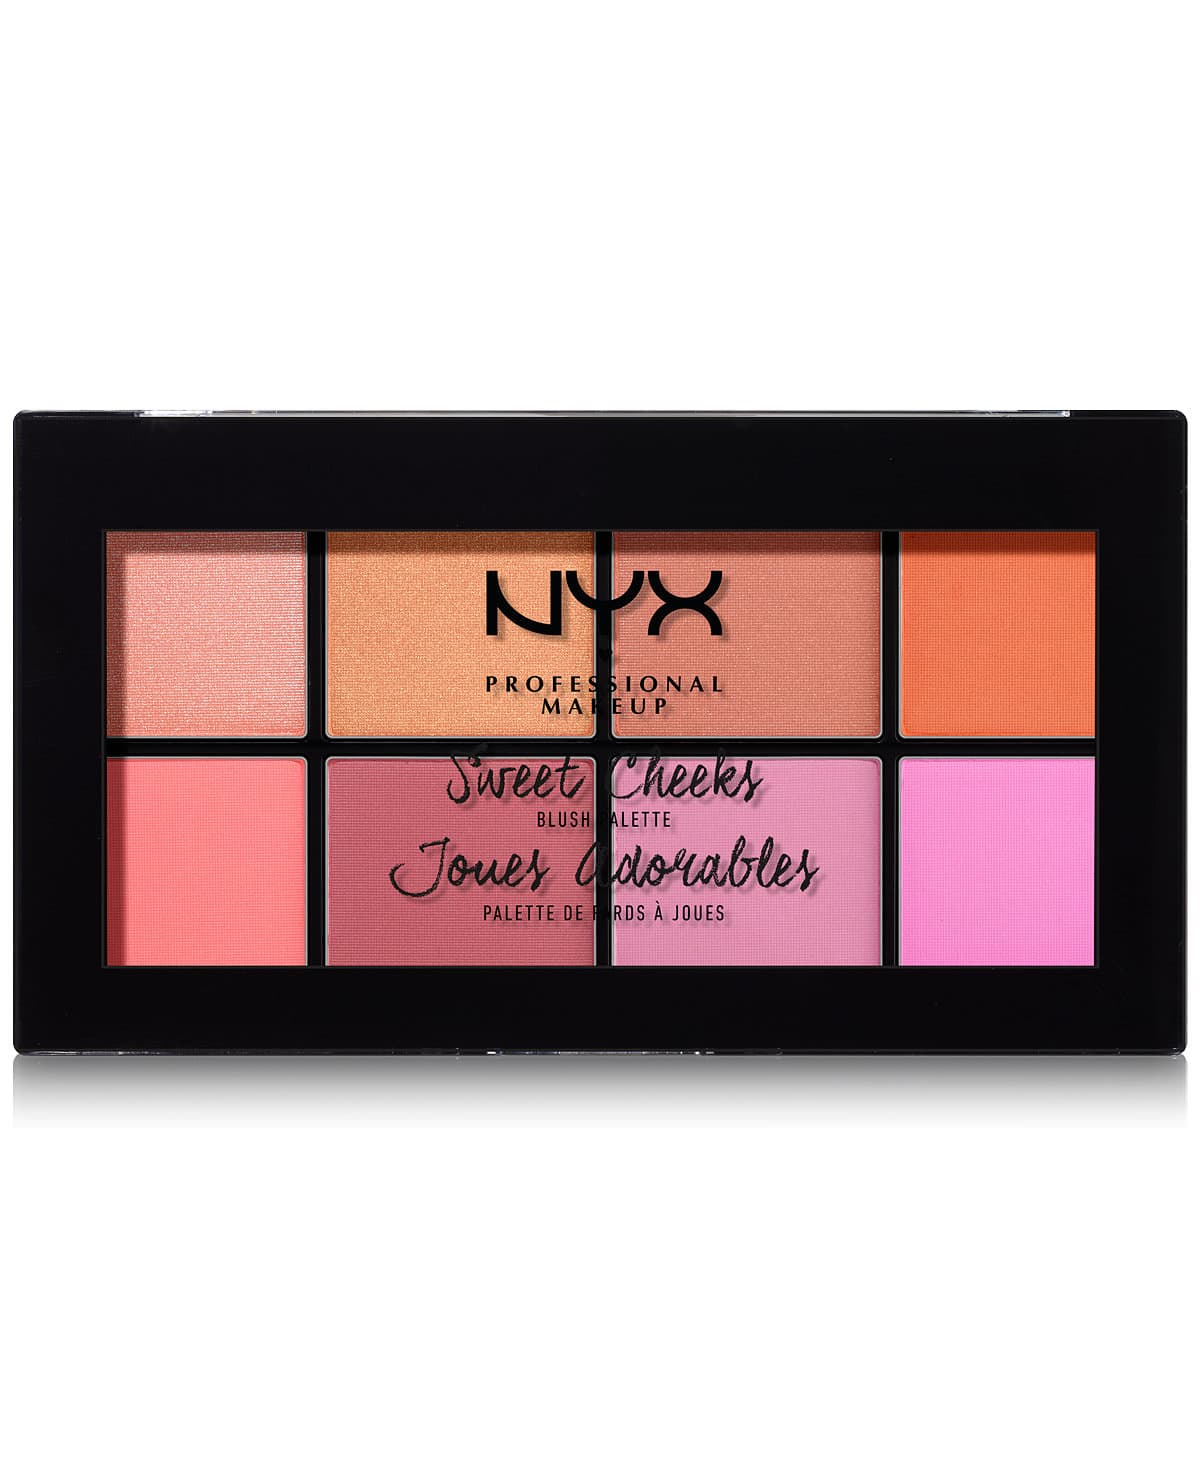 NYX Professional Makeup Sweet Cheeks Blush Palette $12.19 + Free Shipping